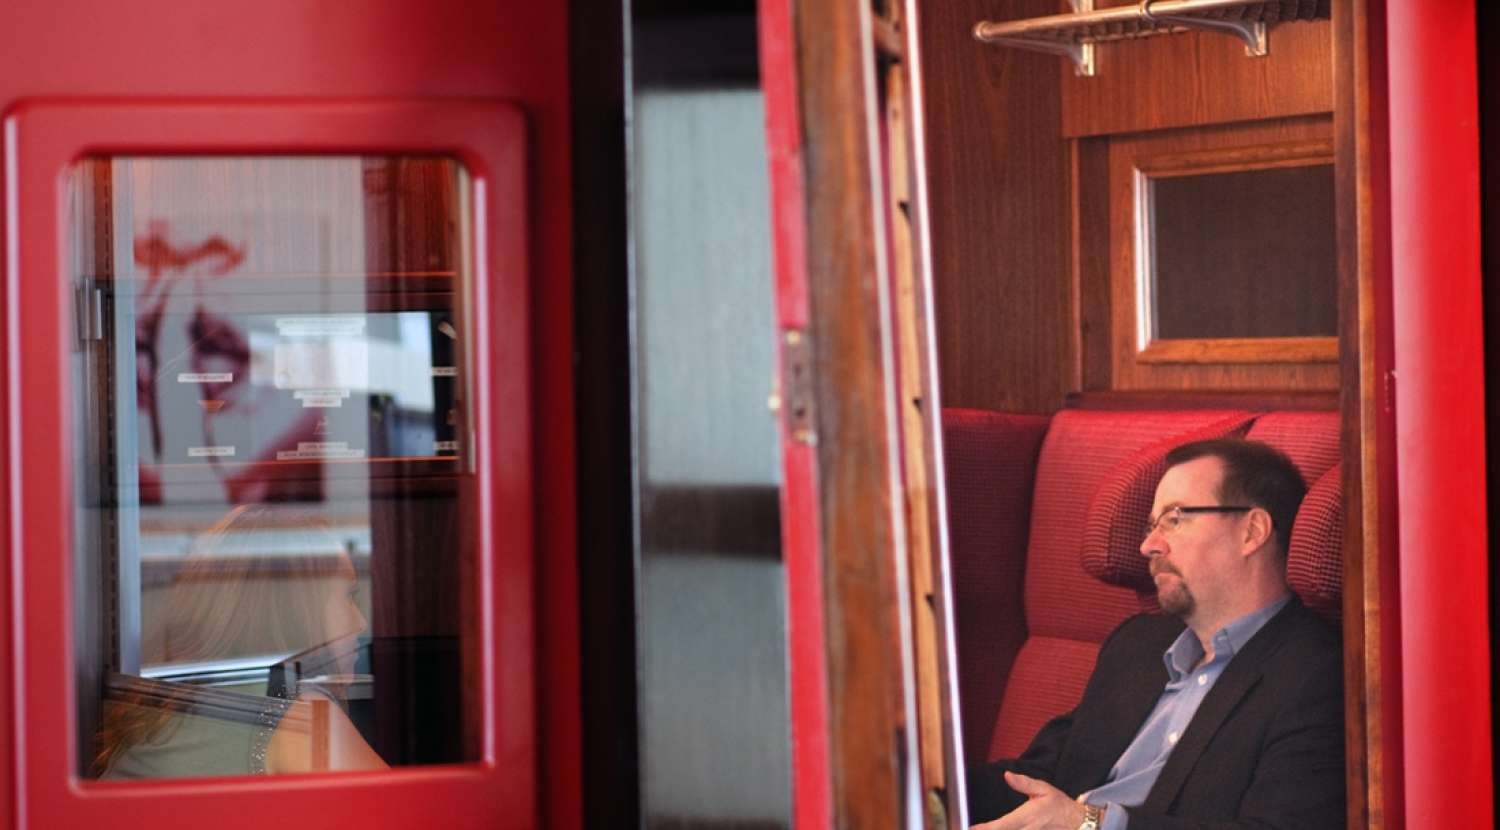 Tube carriage converted into a soundproof meeting room / Design and fit out by Morgan Lovell